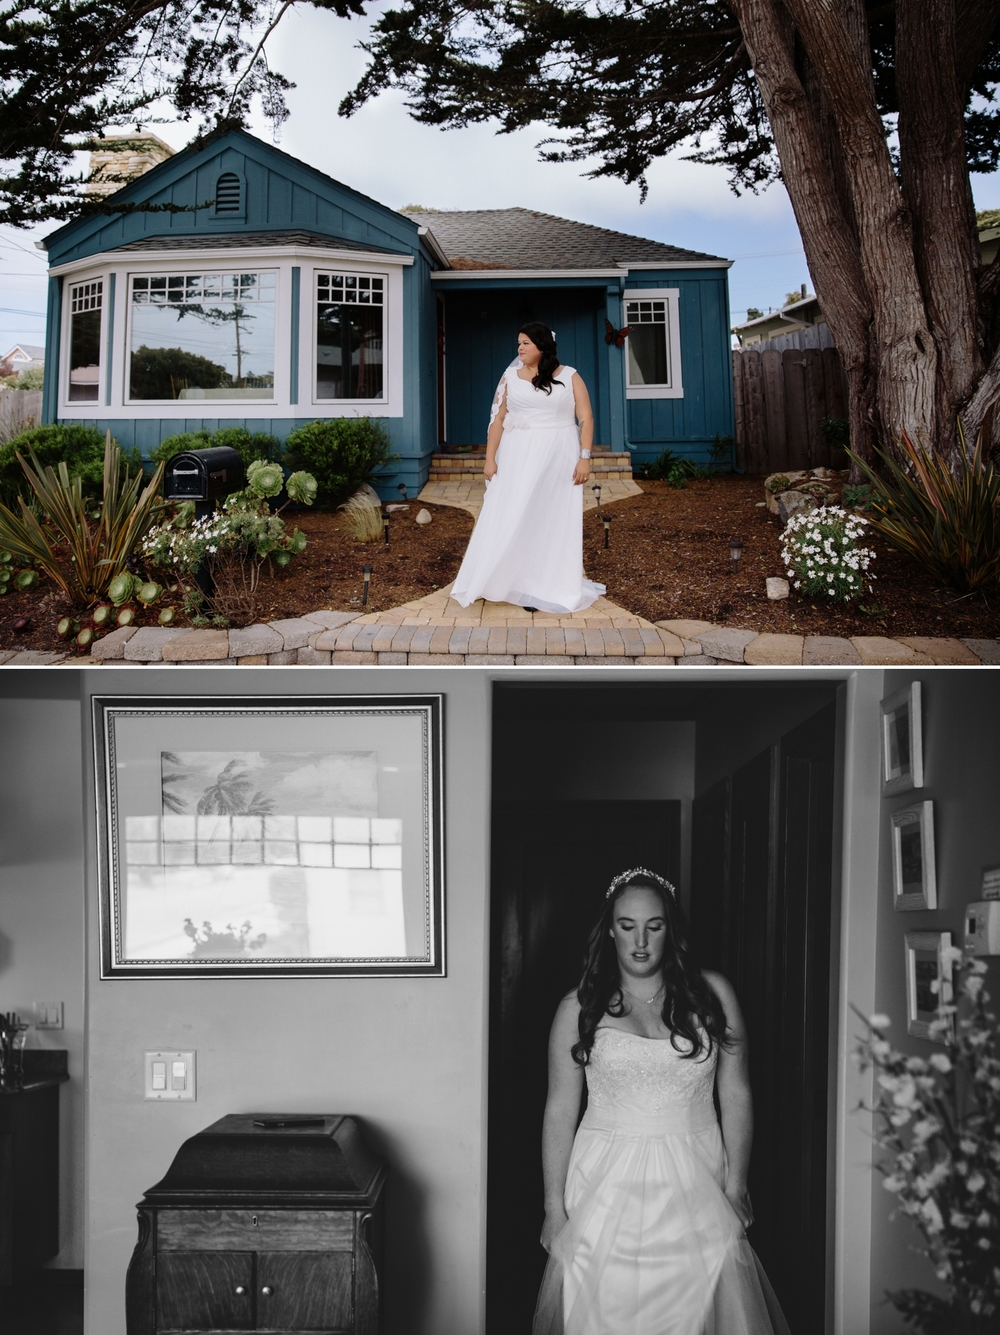 Summer elopement in Big Sur at Julia Pfeiffer Burns State Park by Paige Nelson